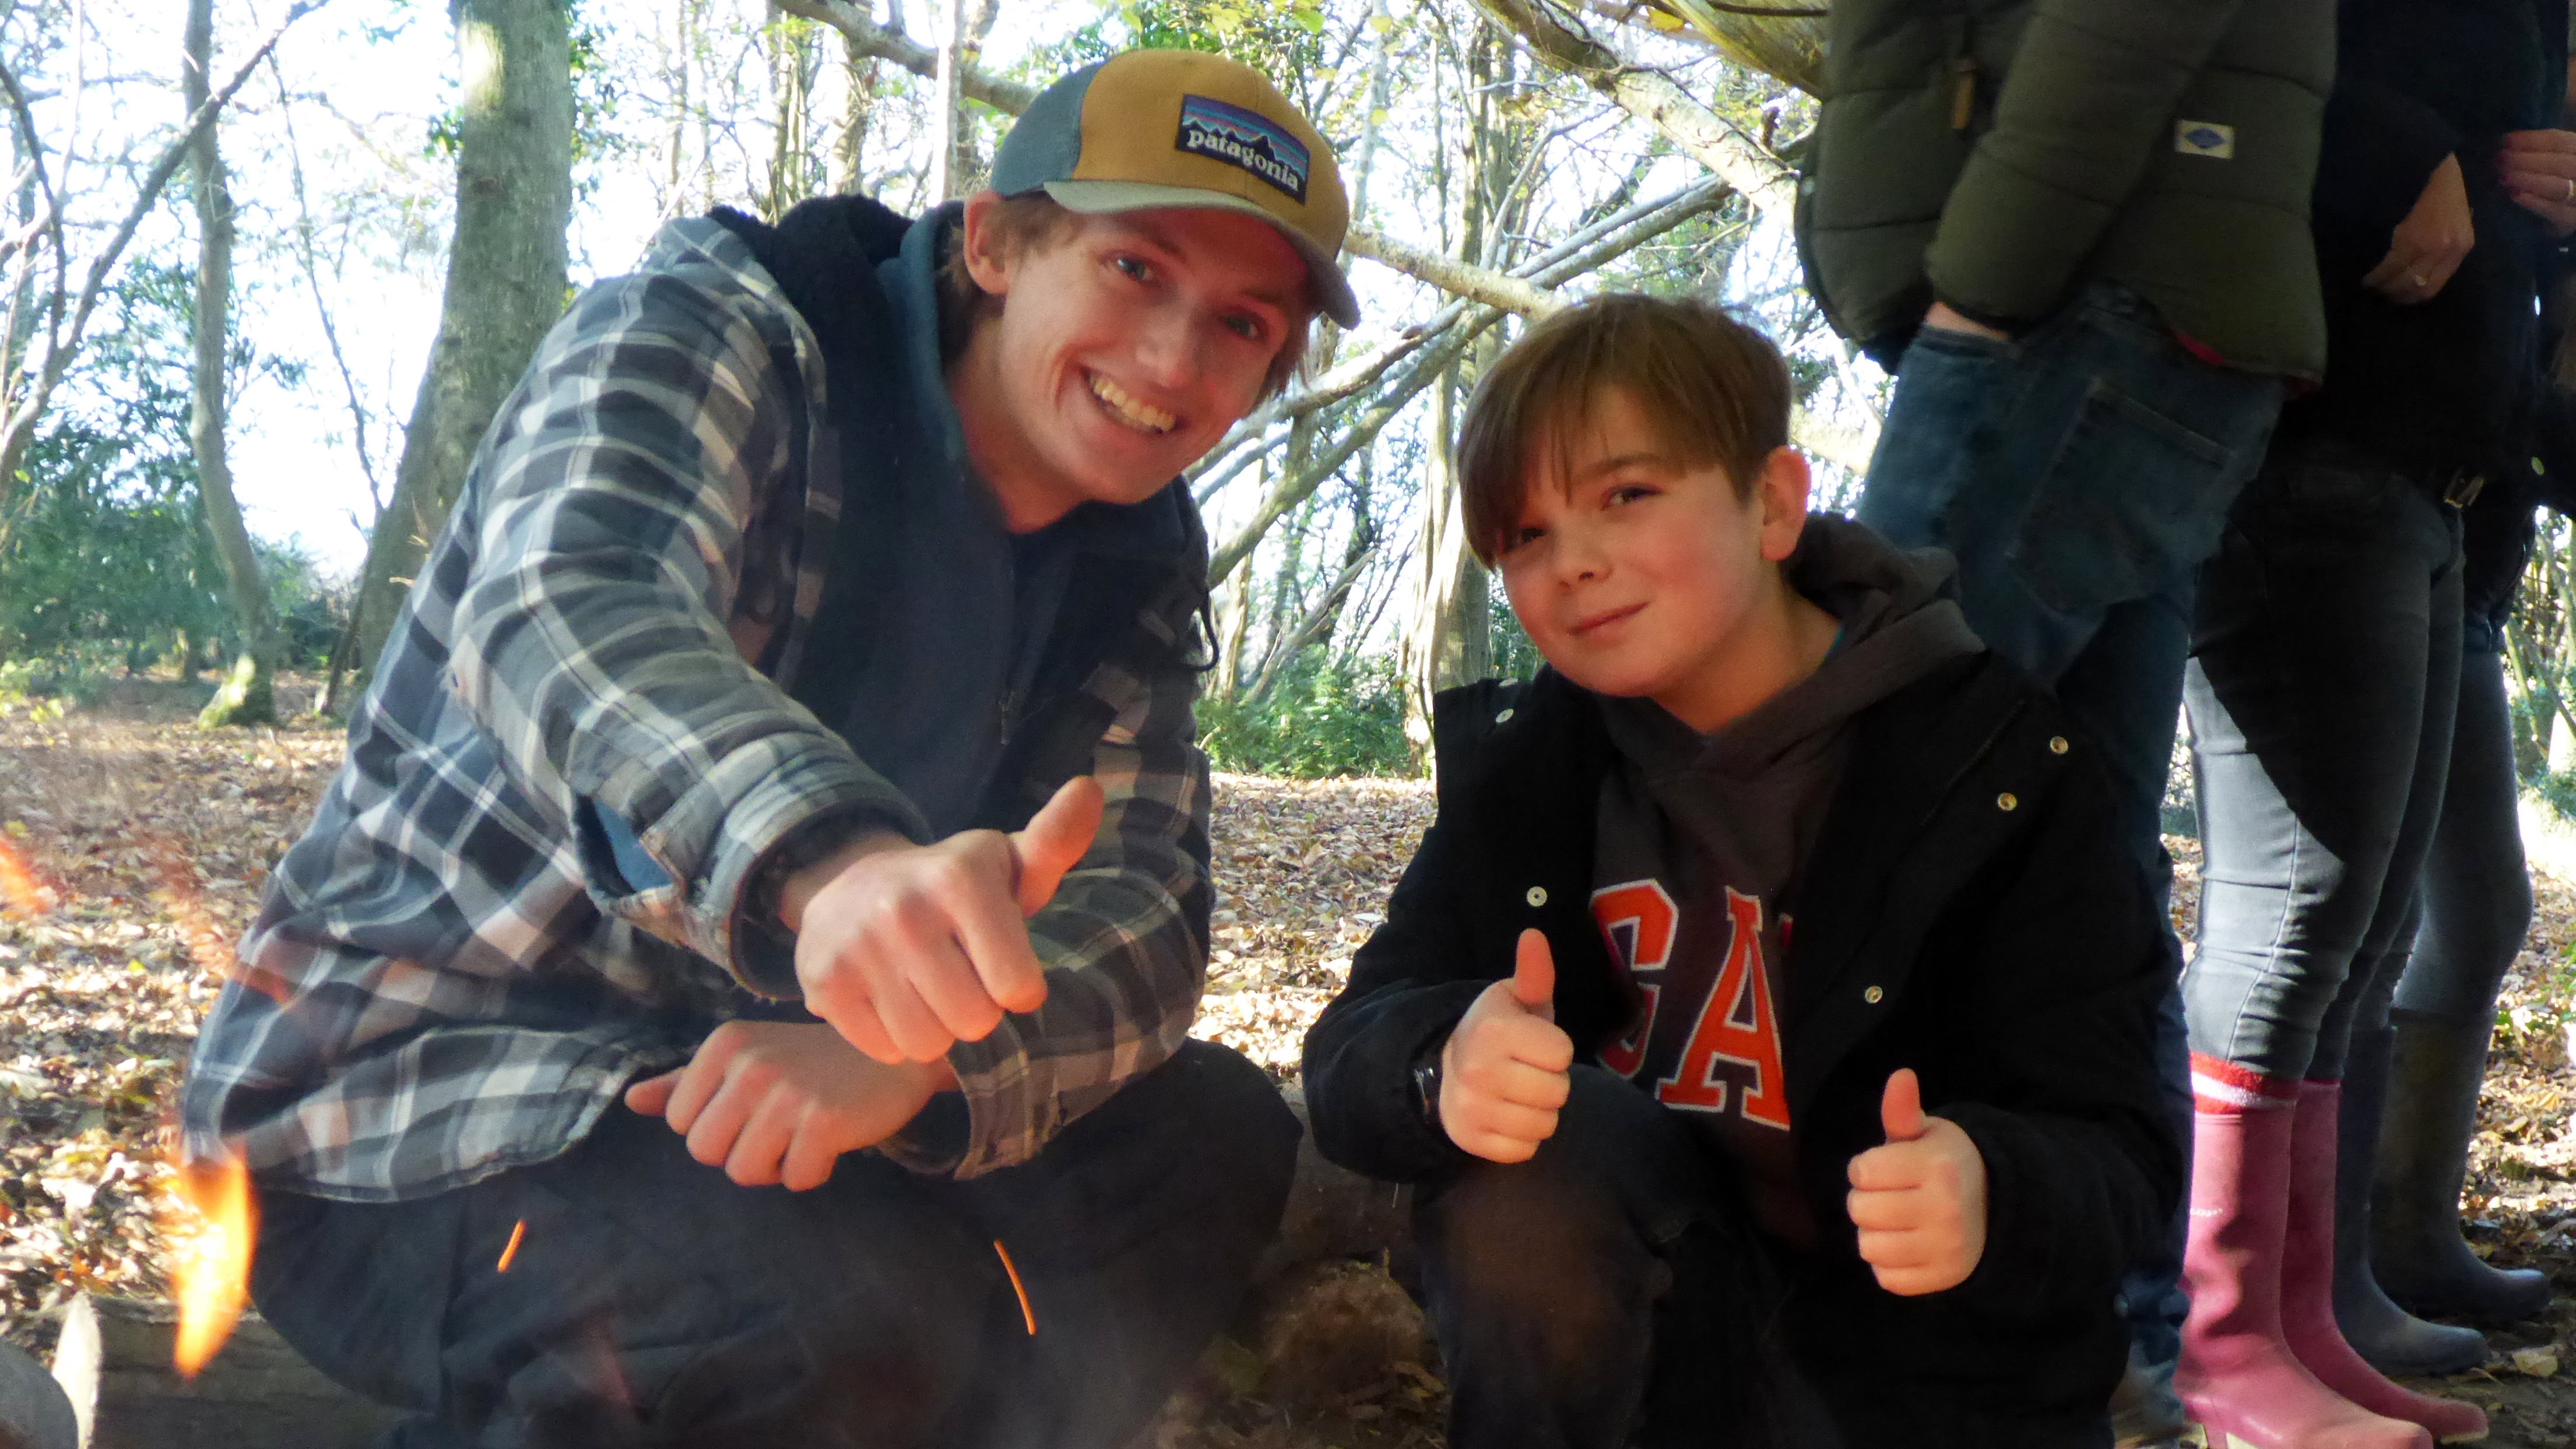 Bushcraft. Thumbs up